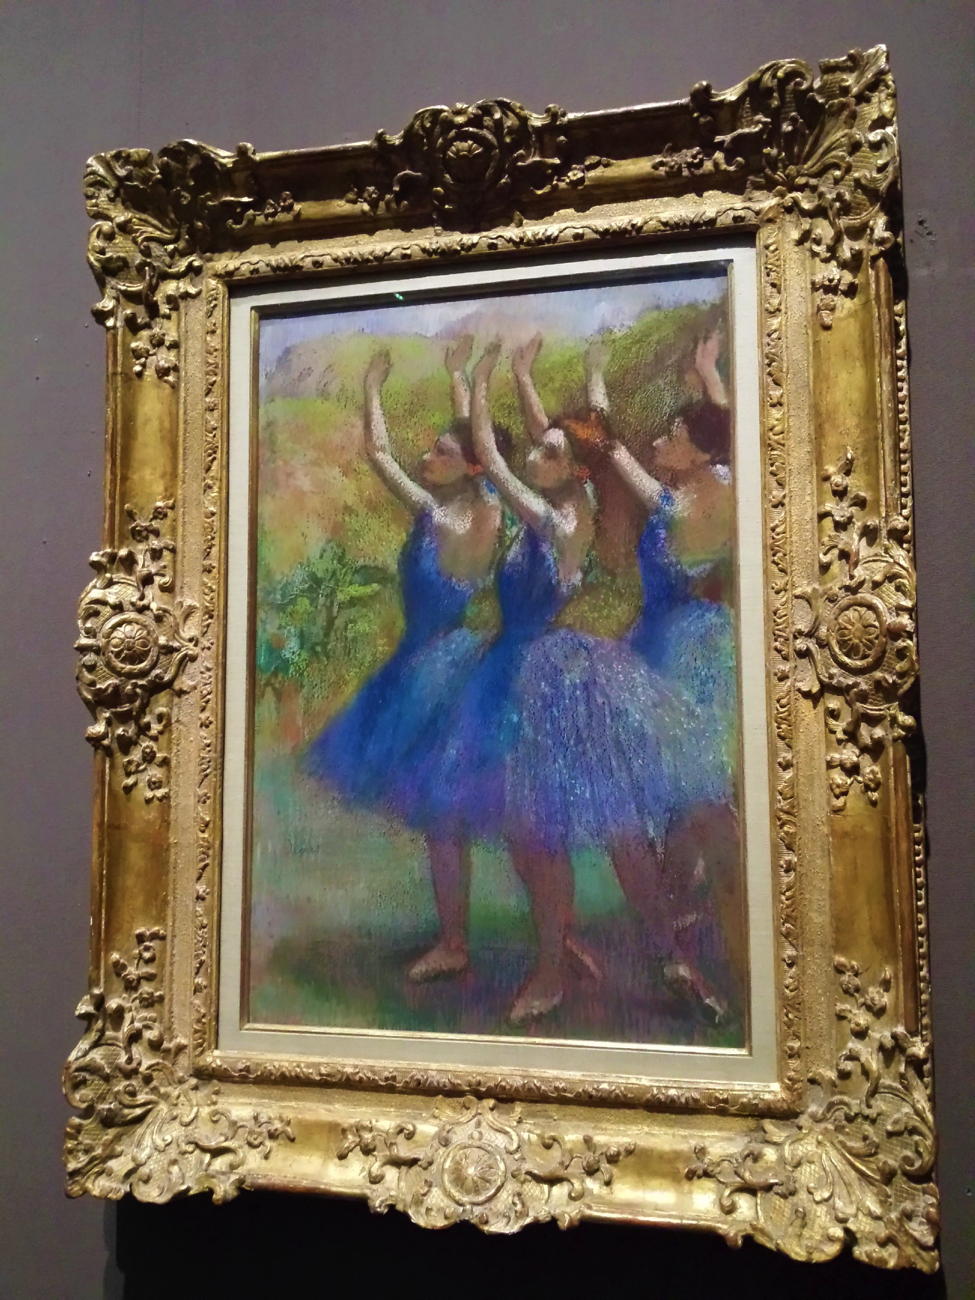 """Three Dancers in Violet Tutus"". Photo taken by me in an art gallery this summer during the English Department's Study Abroad to London."